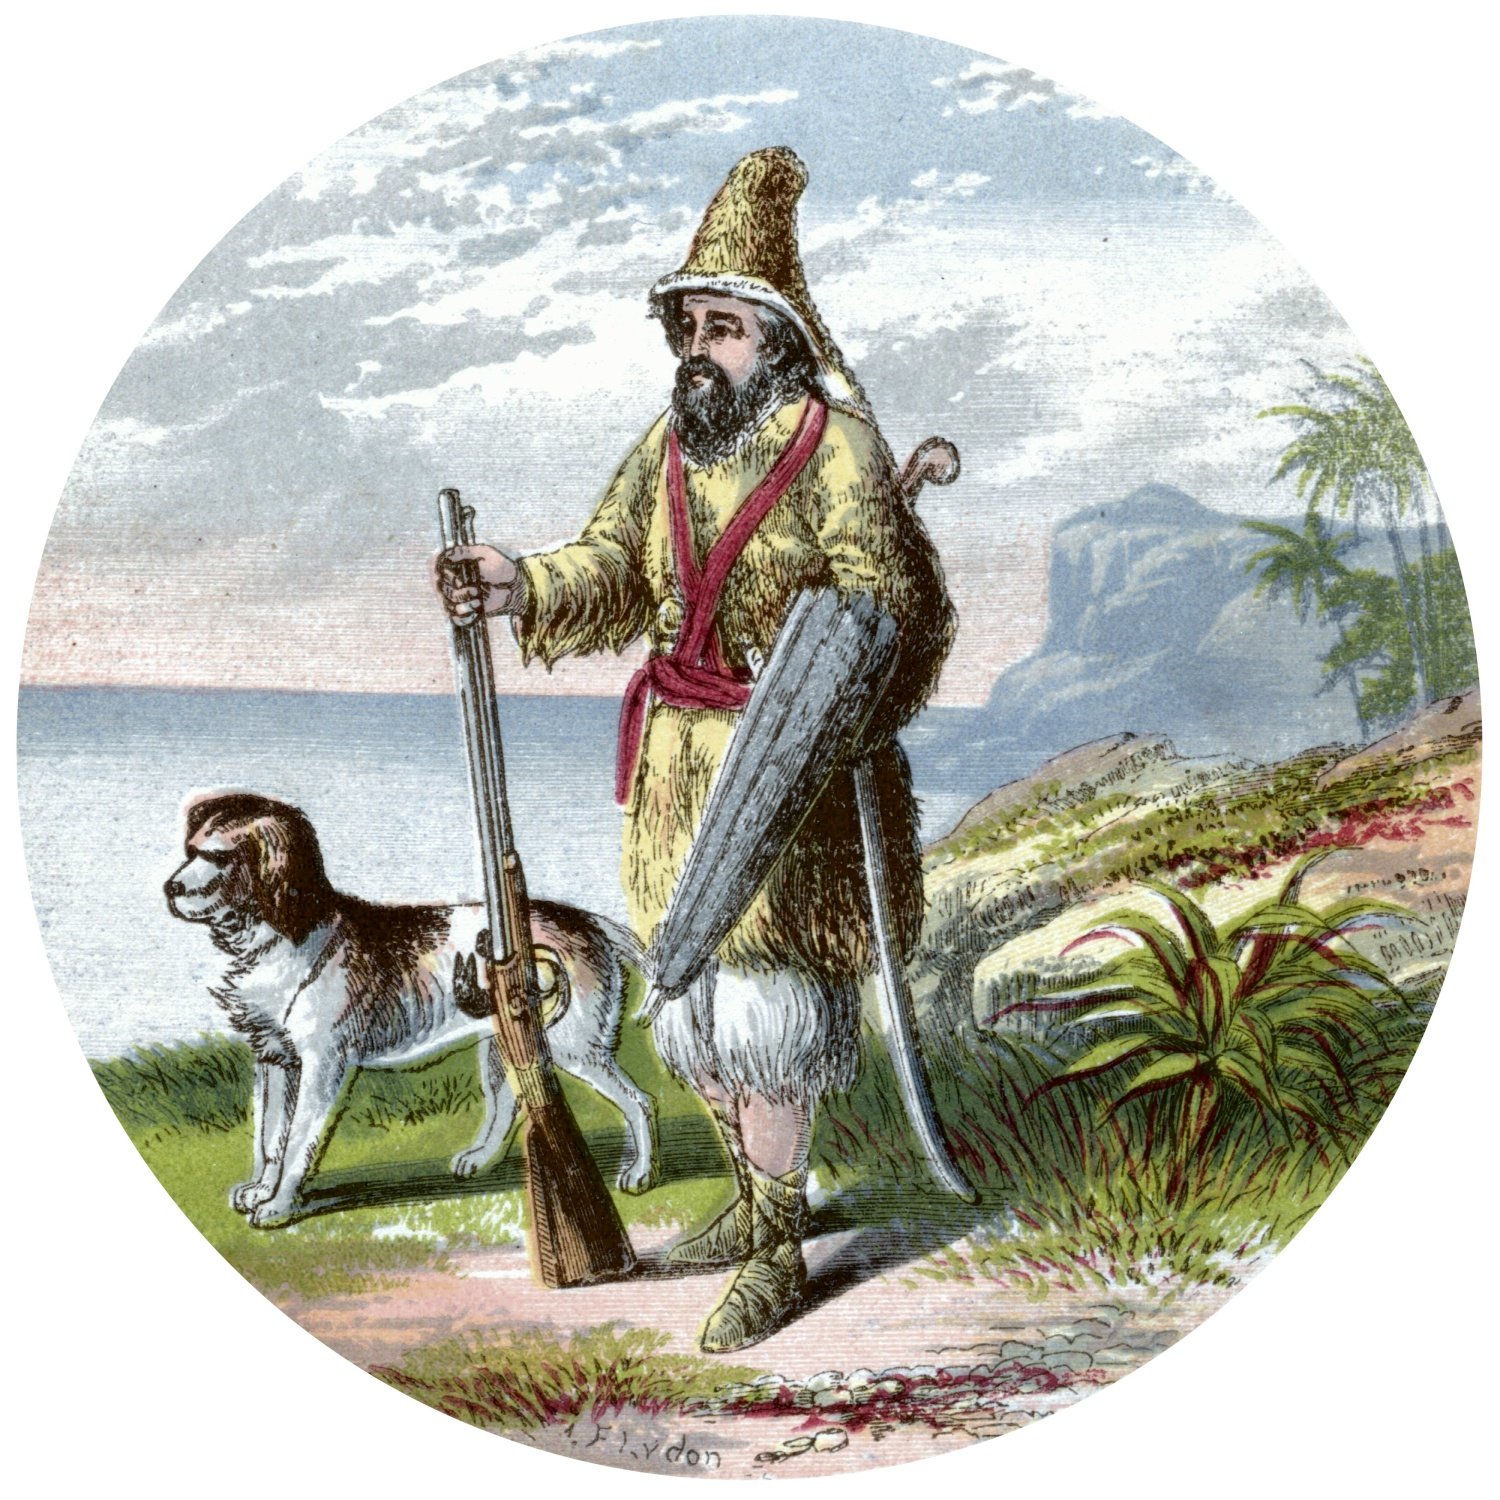 robinson crusoe Free summary and analysis of the events in daniel defoe's robinson crusoe that  won't make you snore we promise.